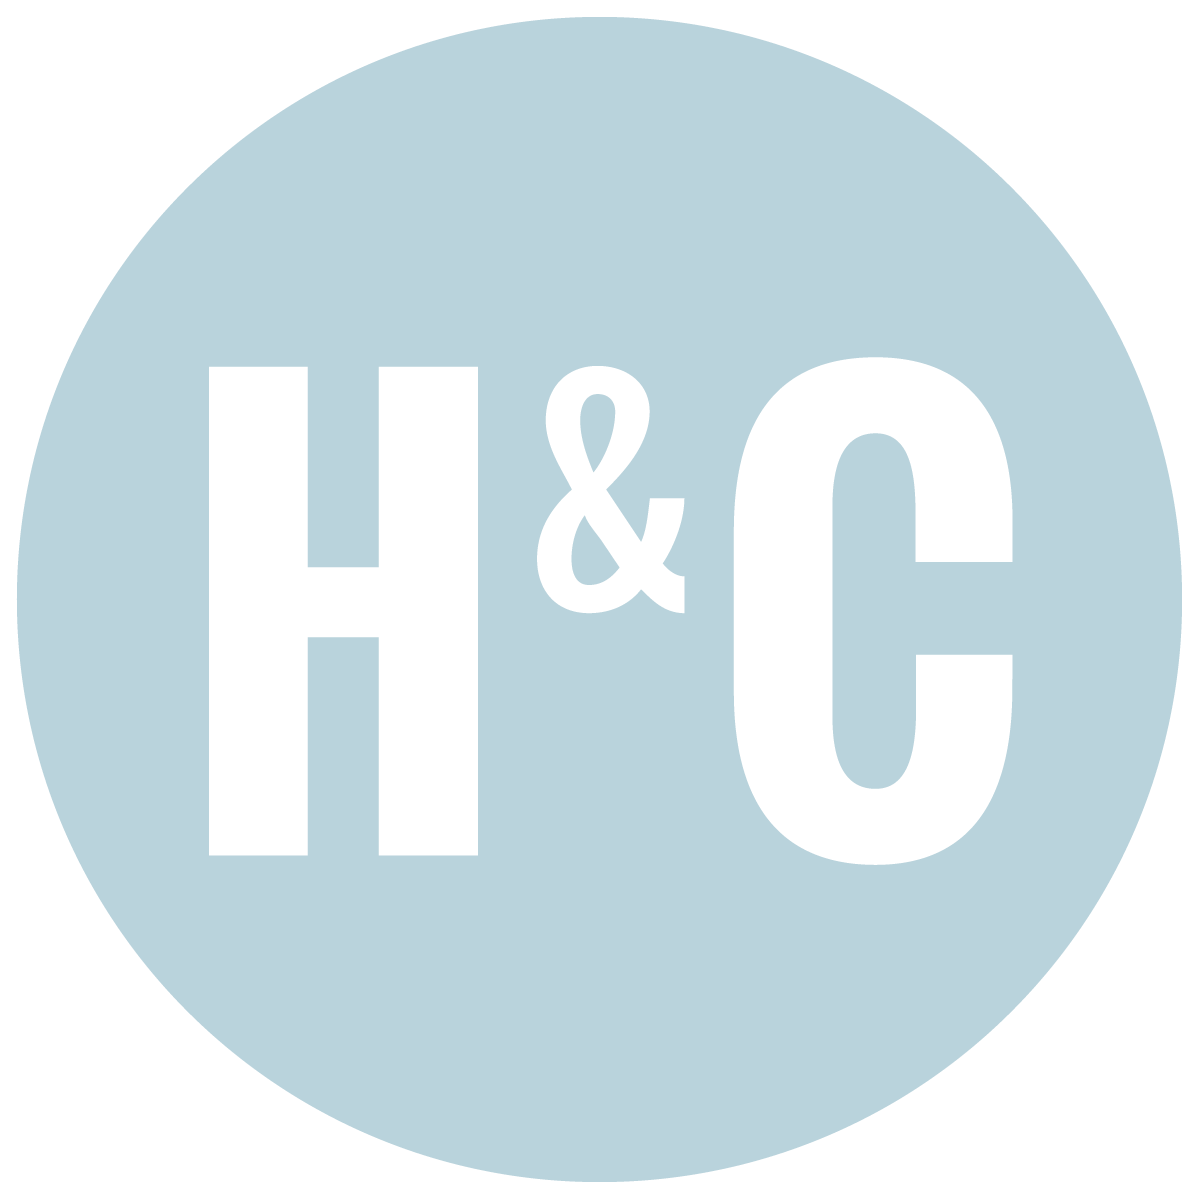 H&C Inc. Digital Marketing Logo